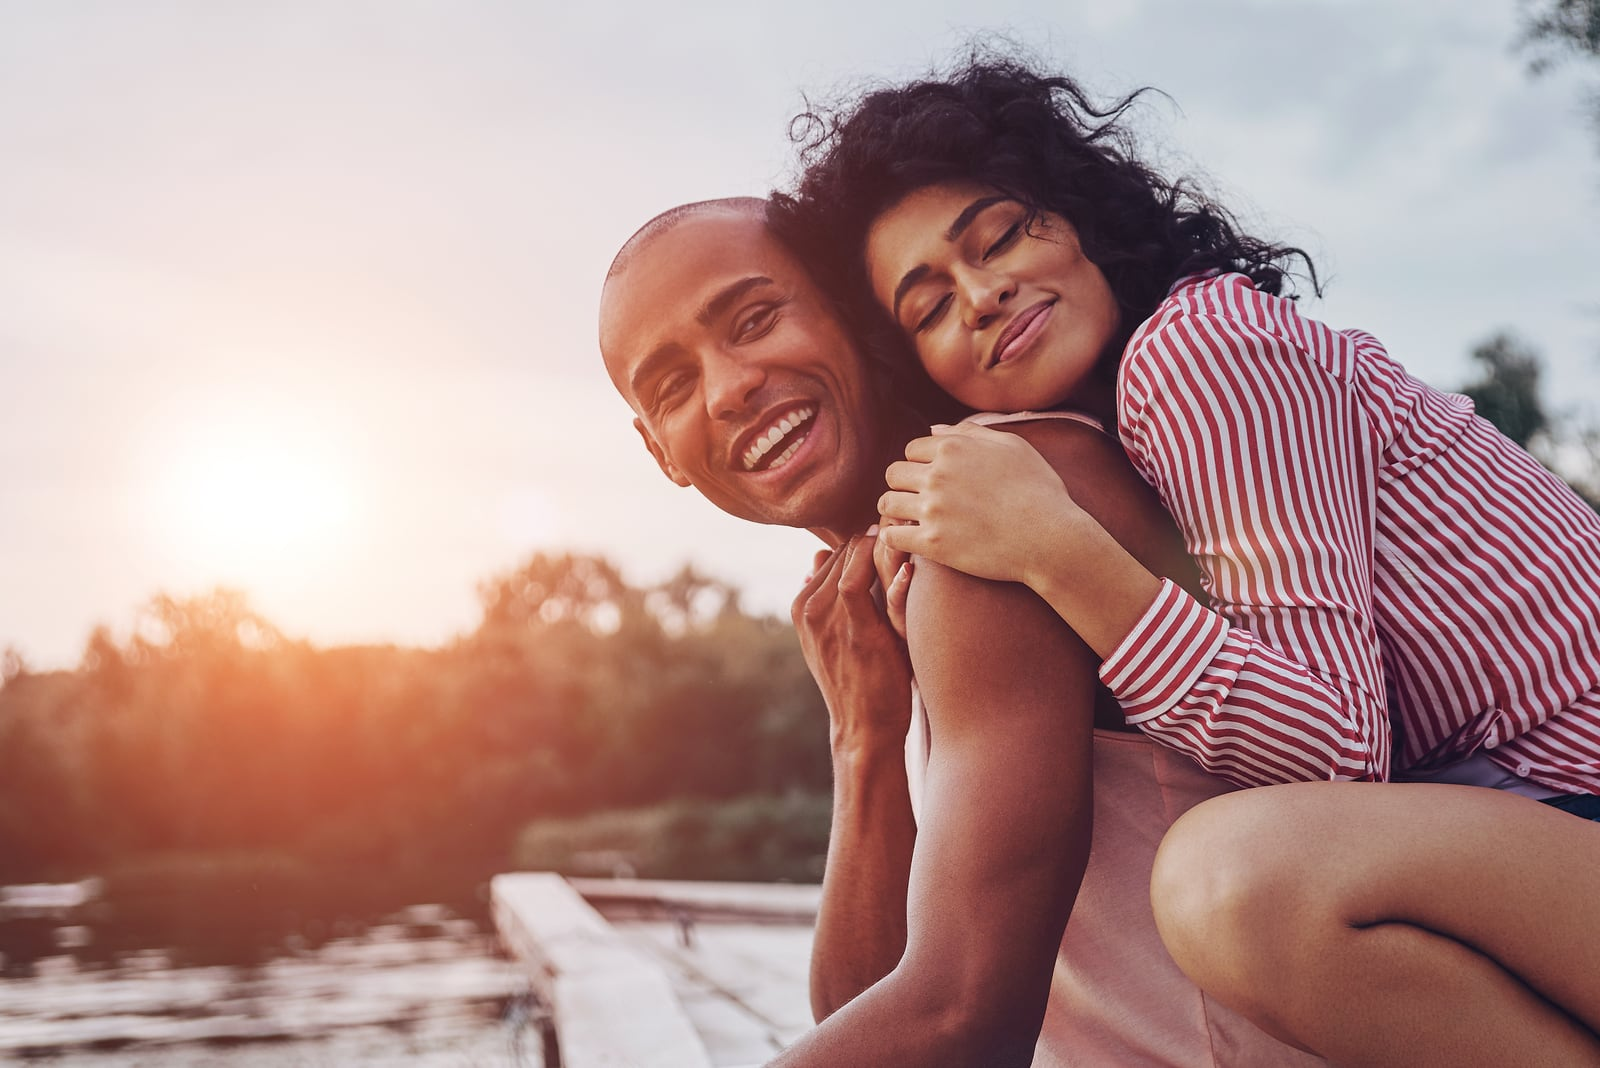 happy young couple embracing and smiling